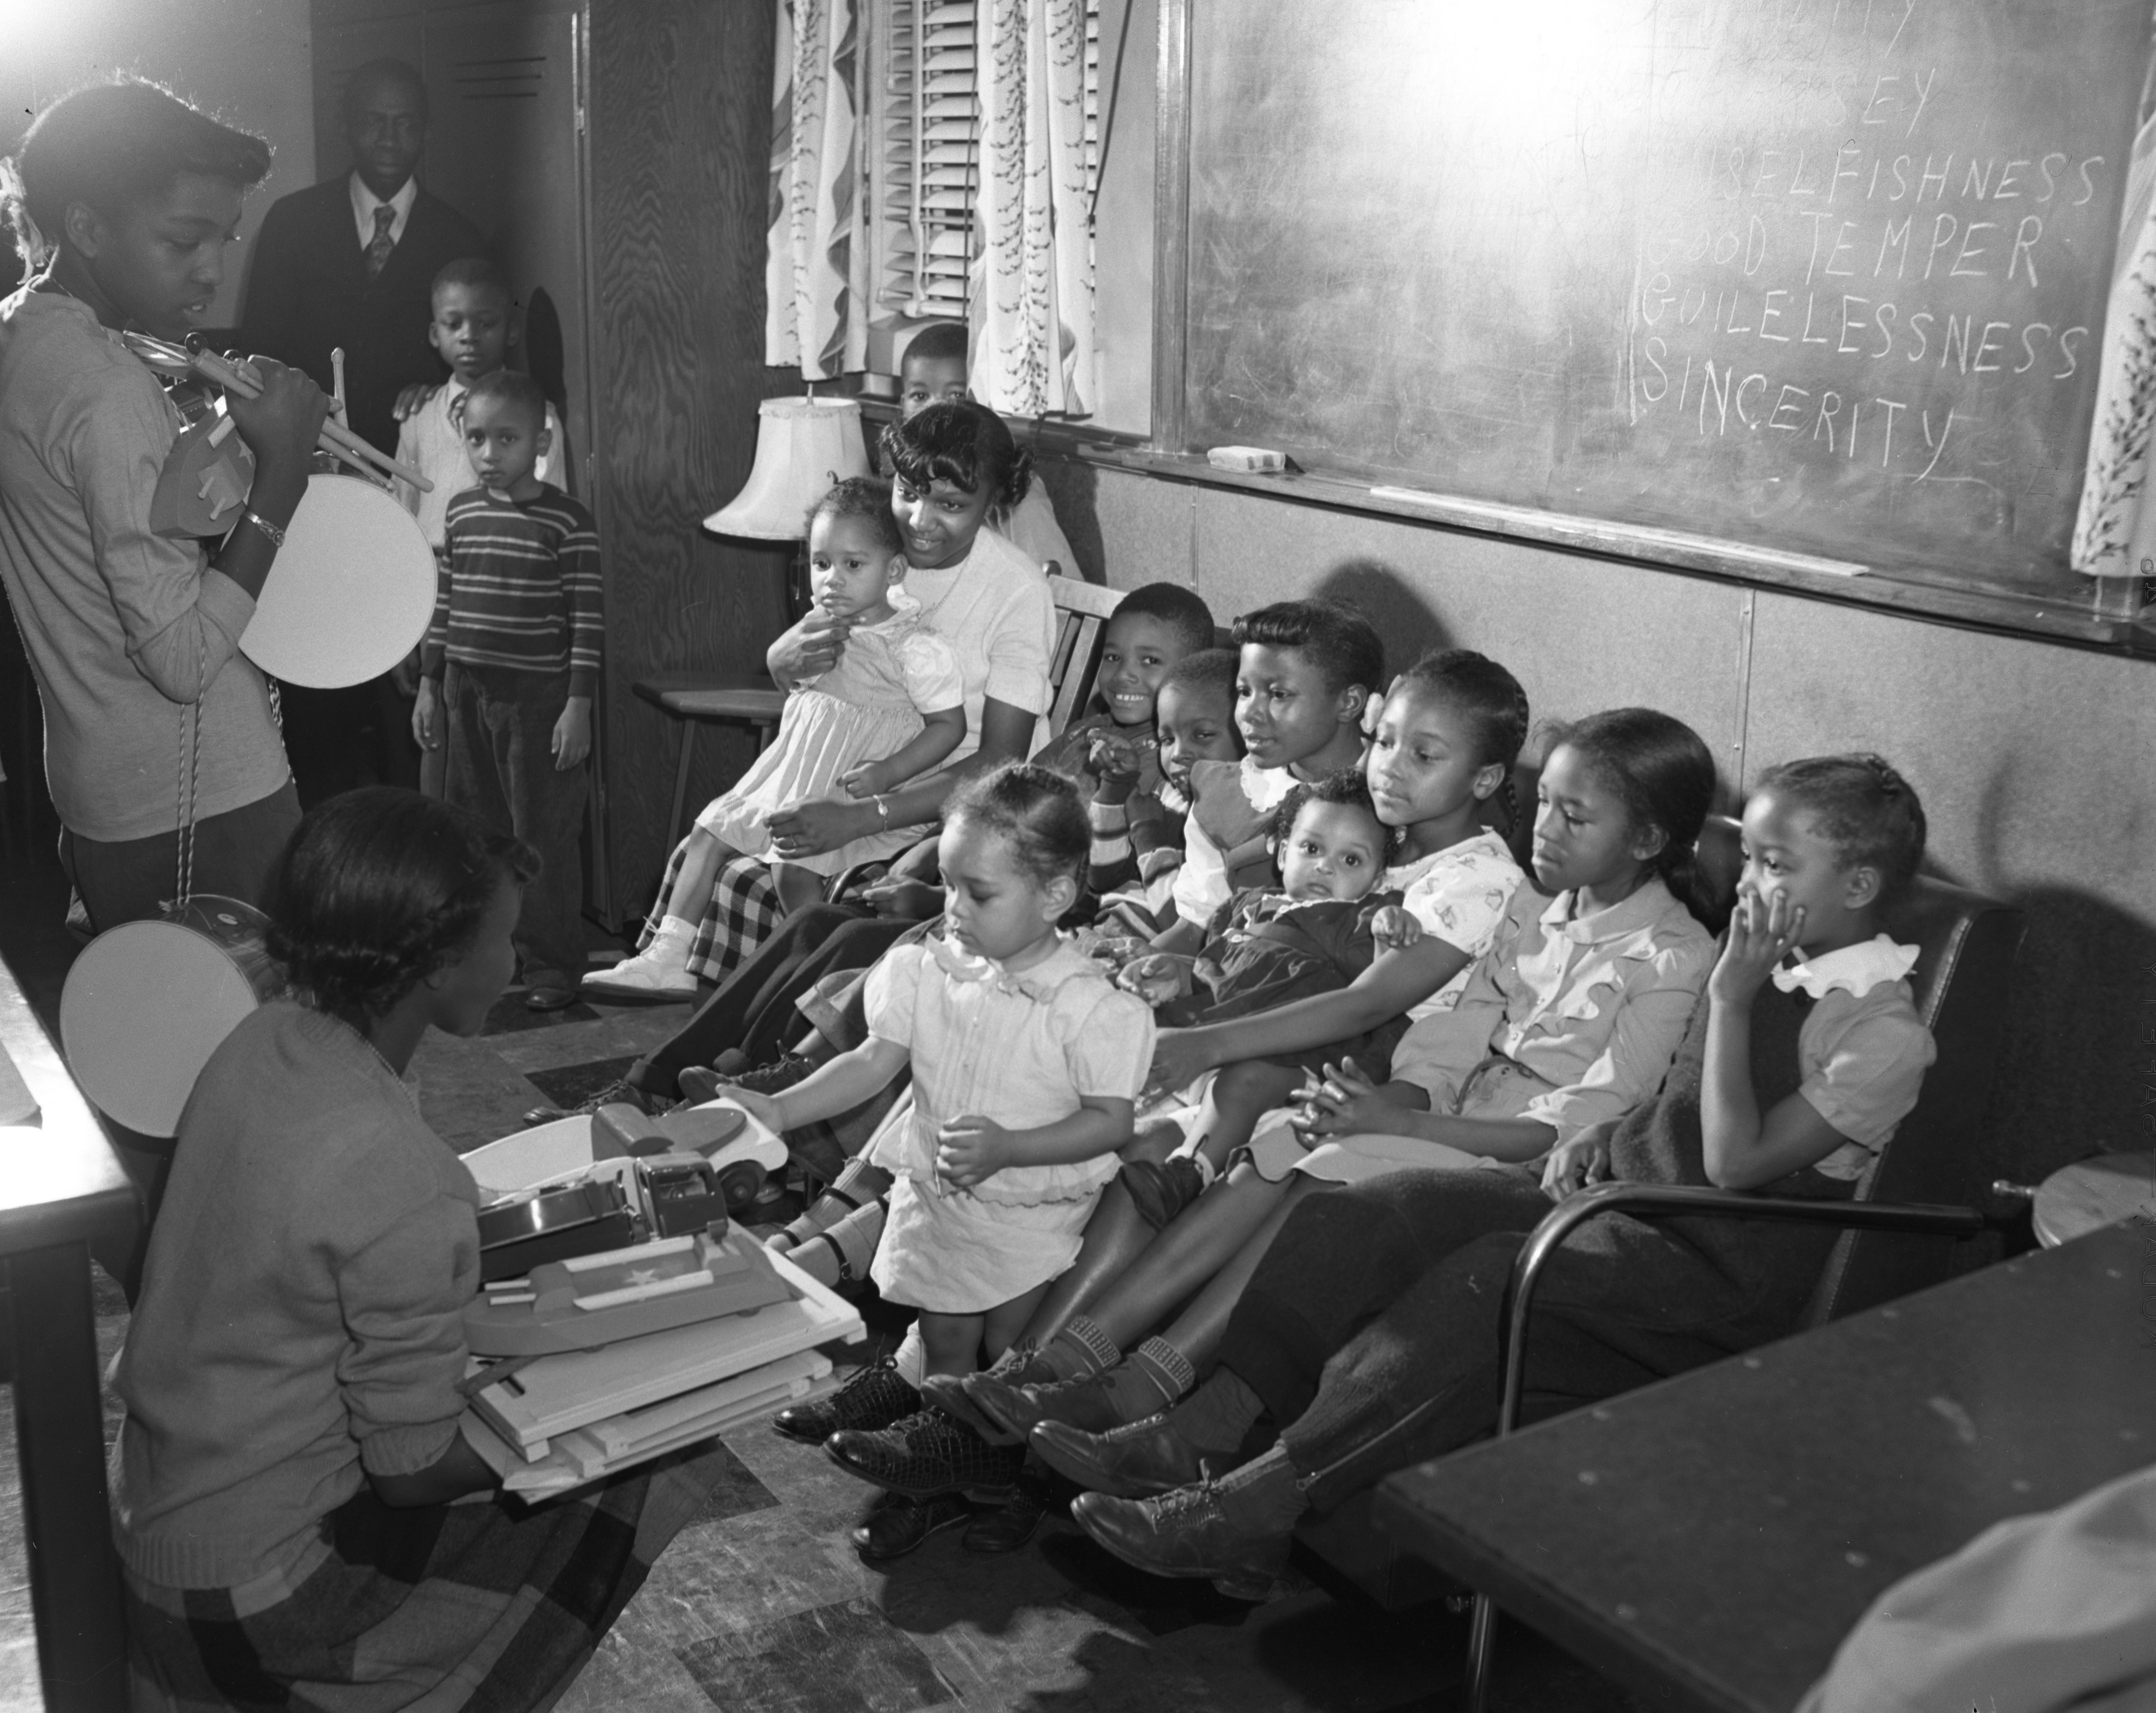 Children's Christmas Party at Second Baptist Church, December 1948 image